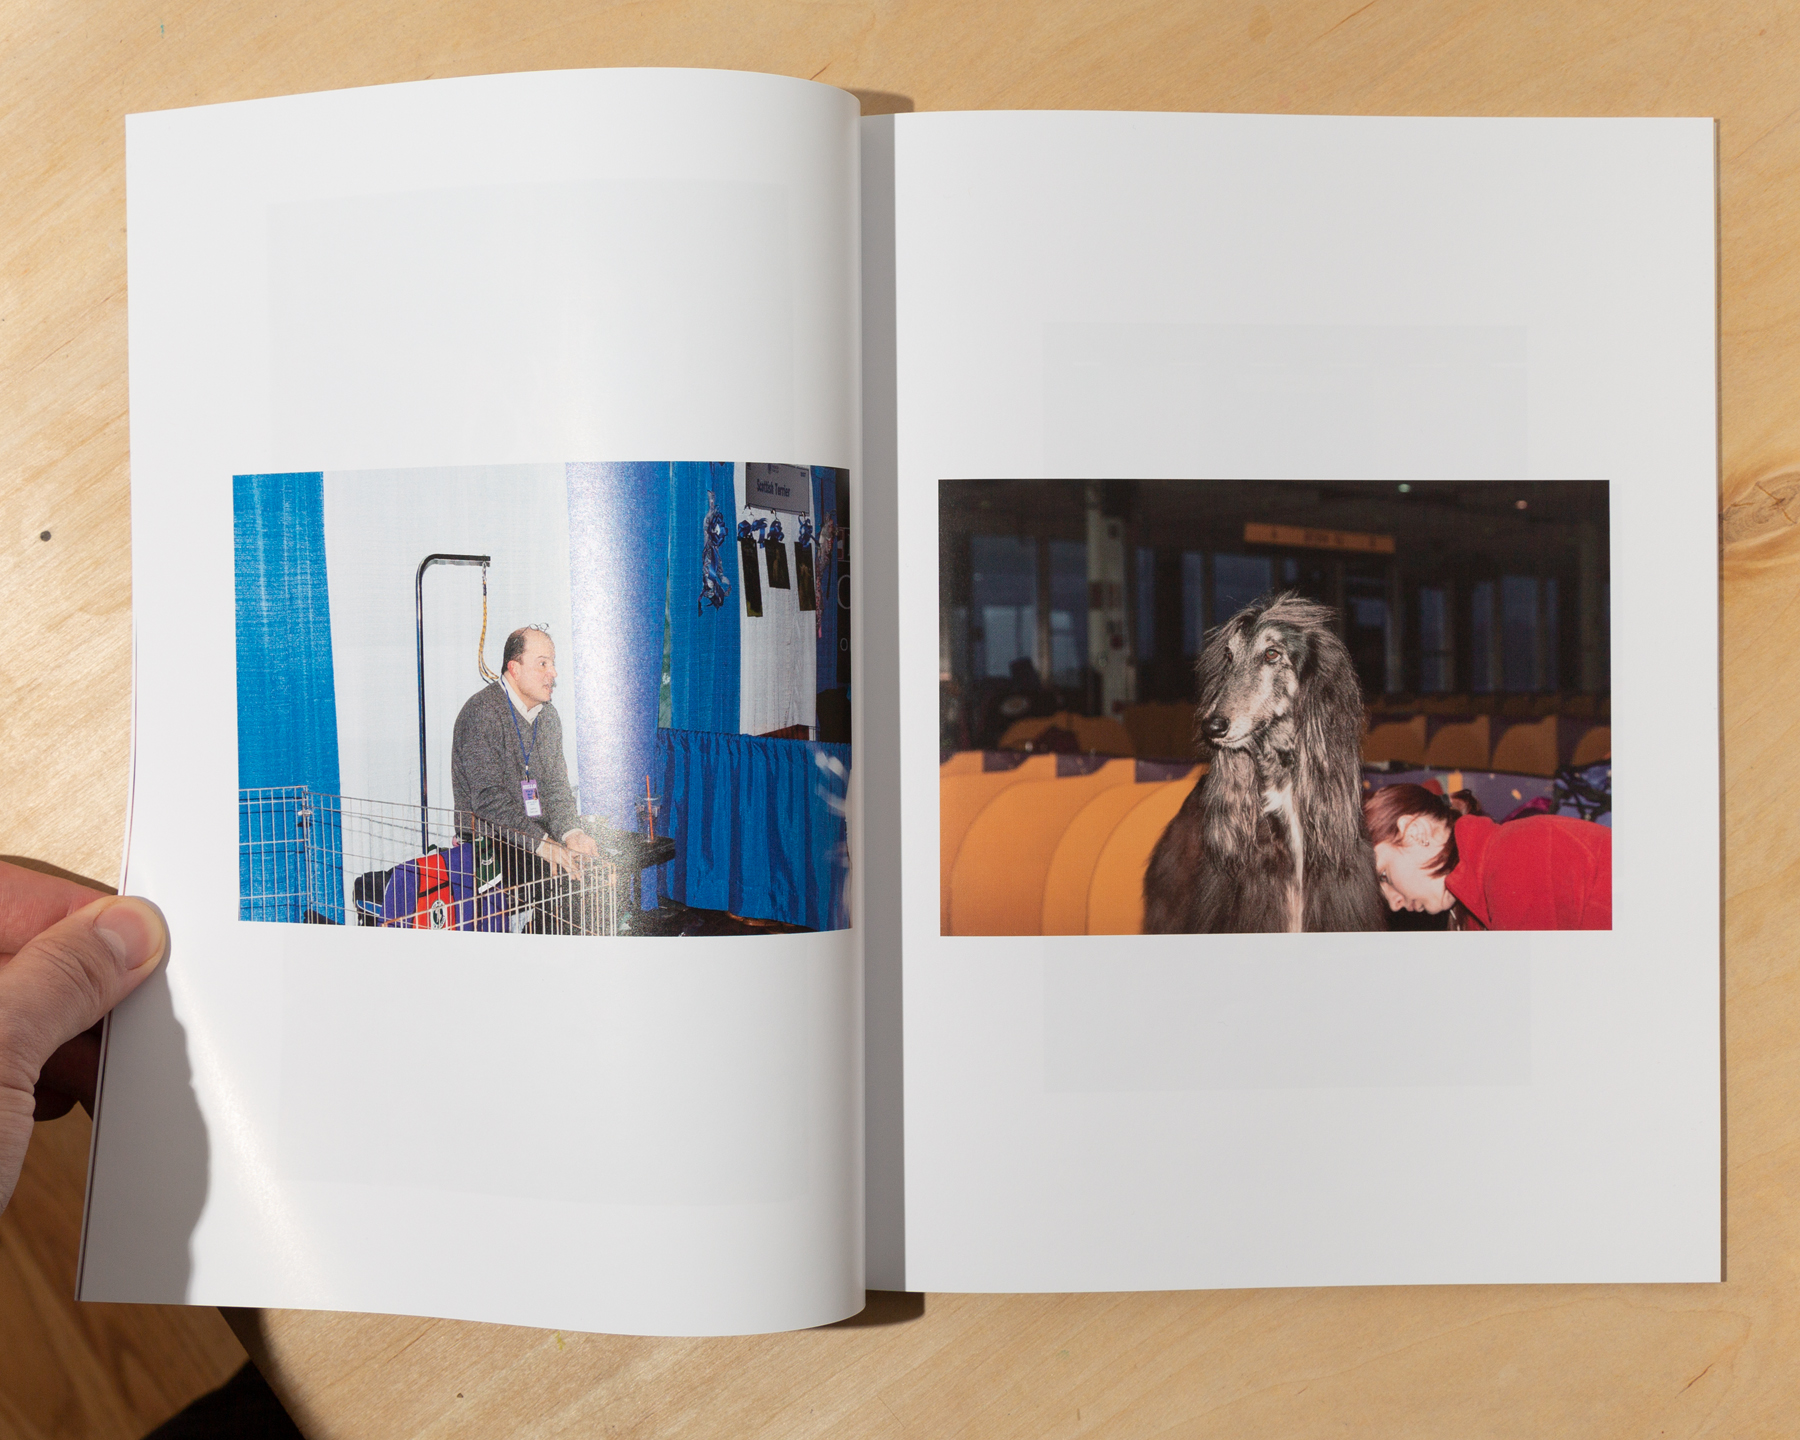 A 60 page magazine with images taken from 2014-2019 (except for 2018) at the Westminster Agility Championships and AKC Meet The Breeds event at Piers 92 & 94 in New York City